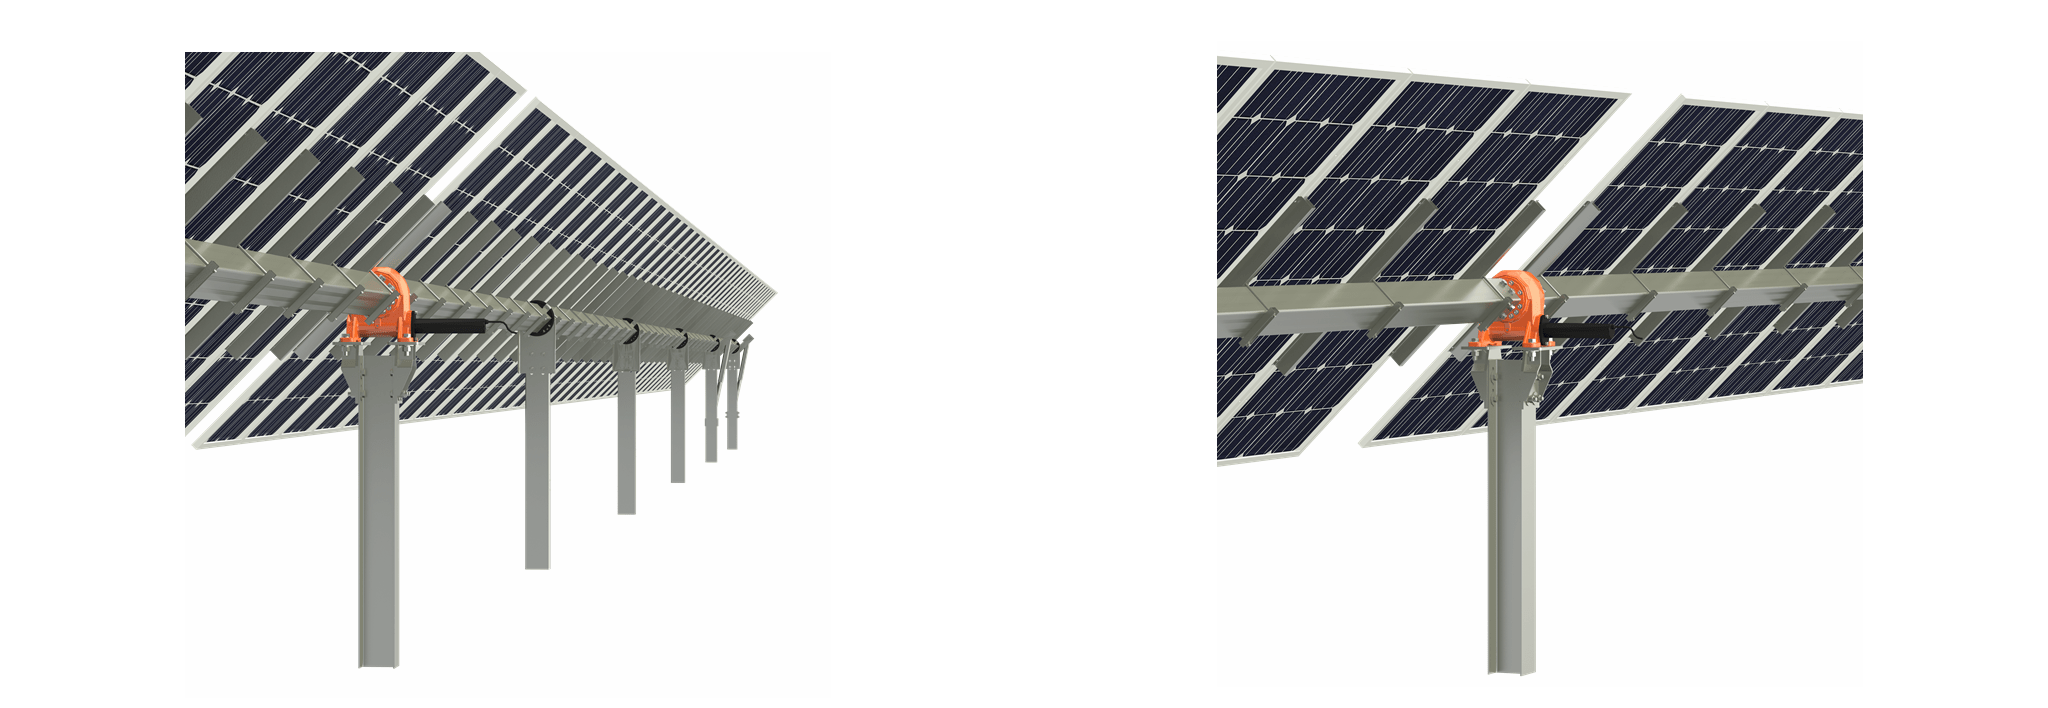 Clenergy PV-ezRack EzTracker D1P One Portrait Horizontal Single-axis Solar Tracker